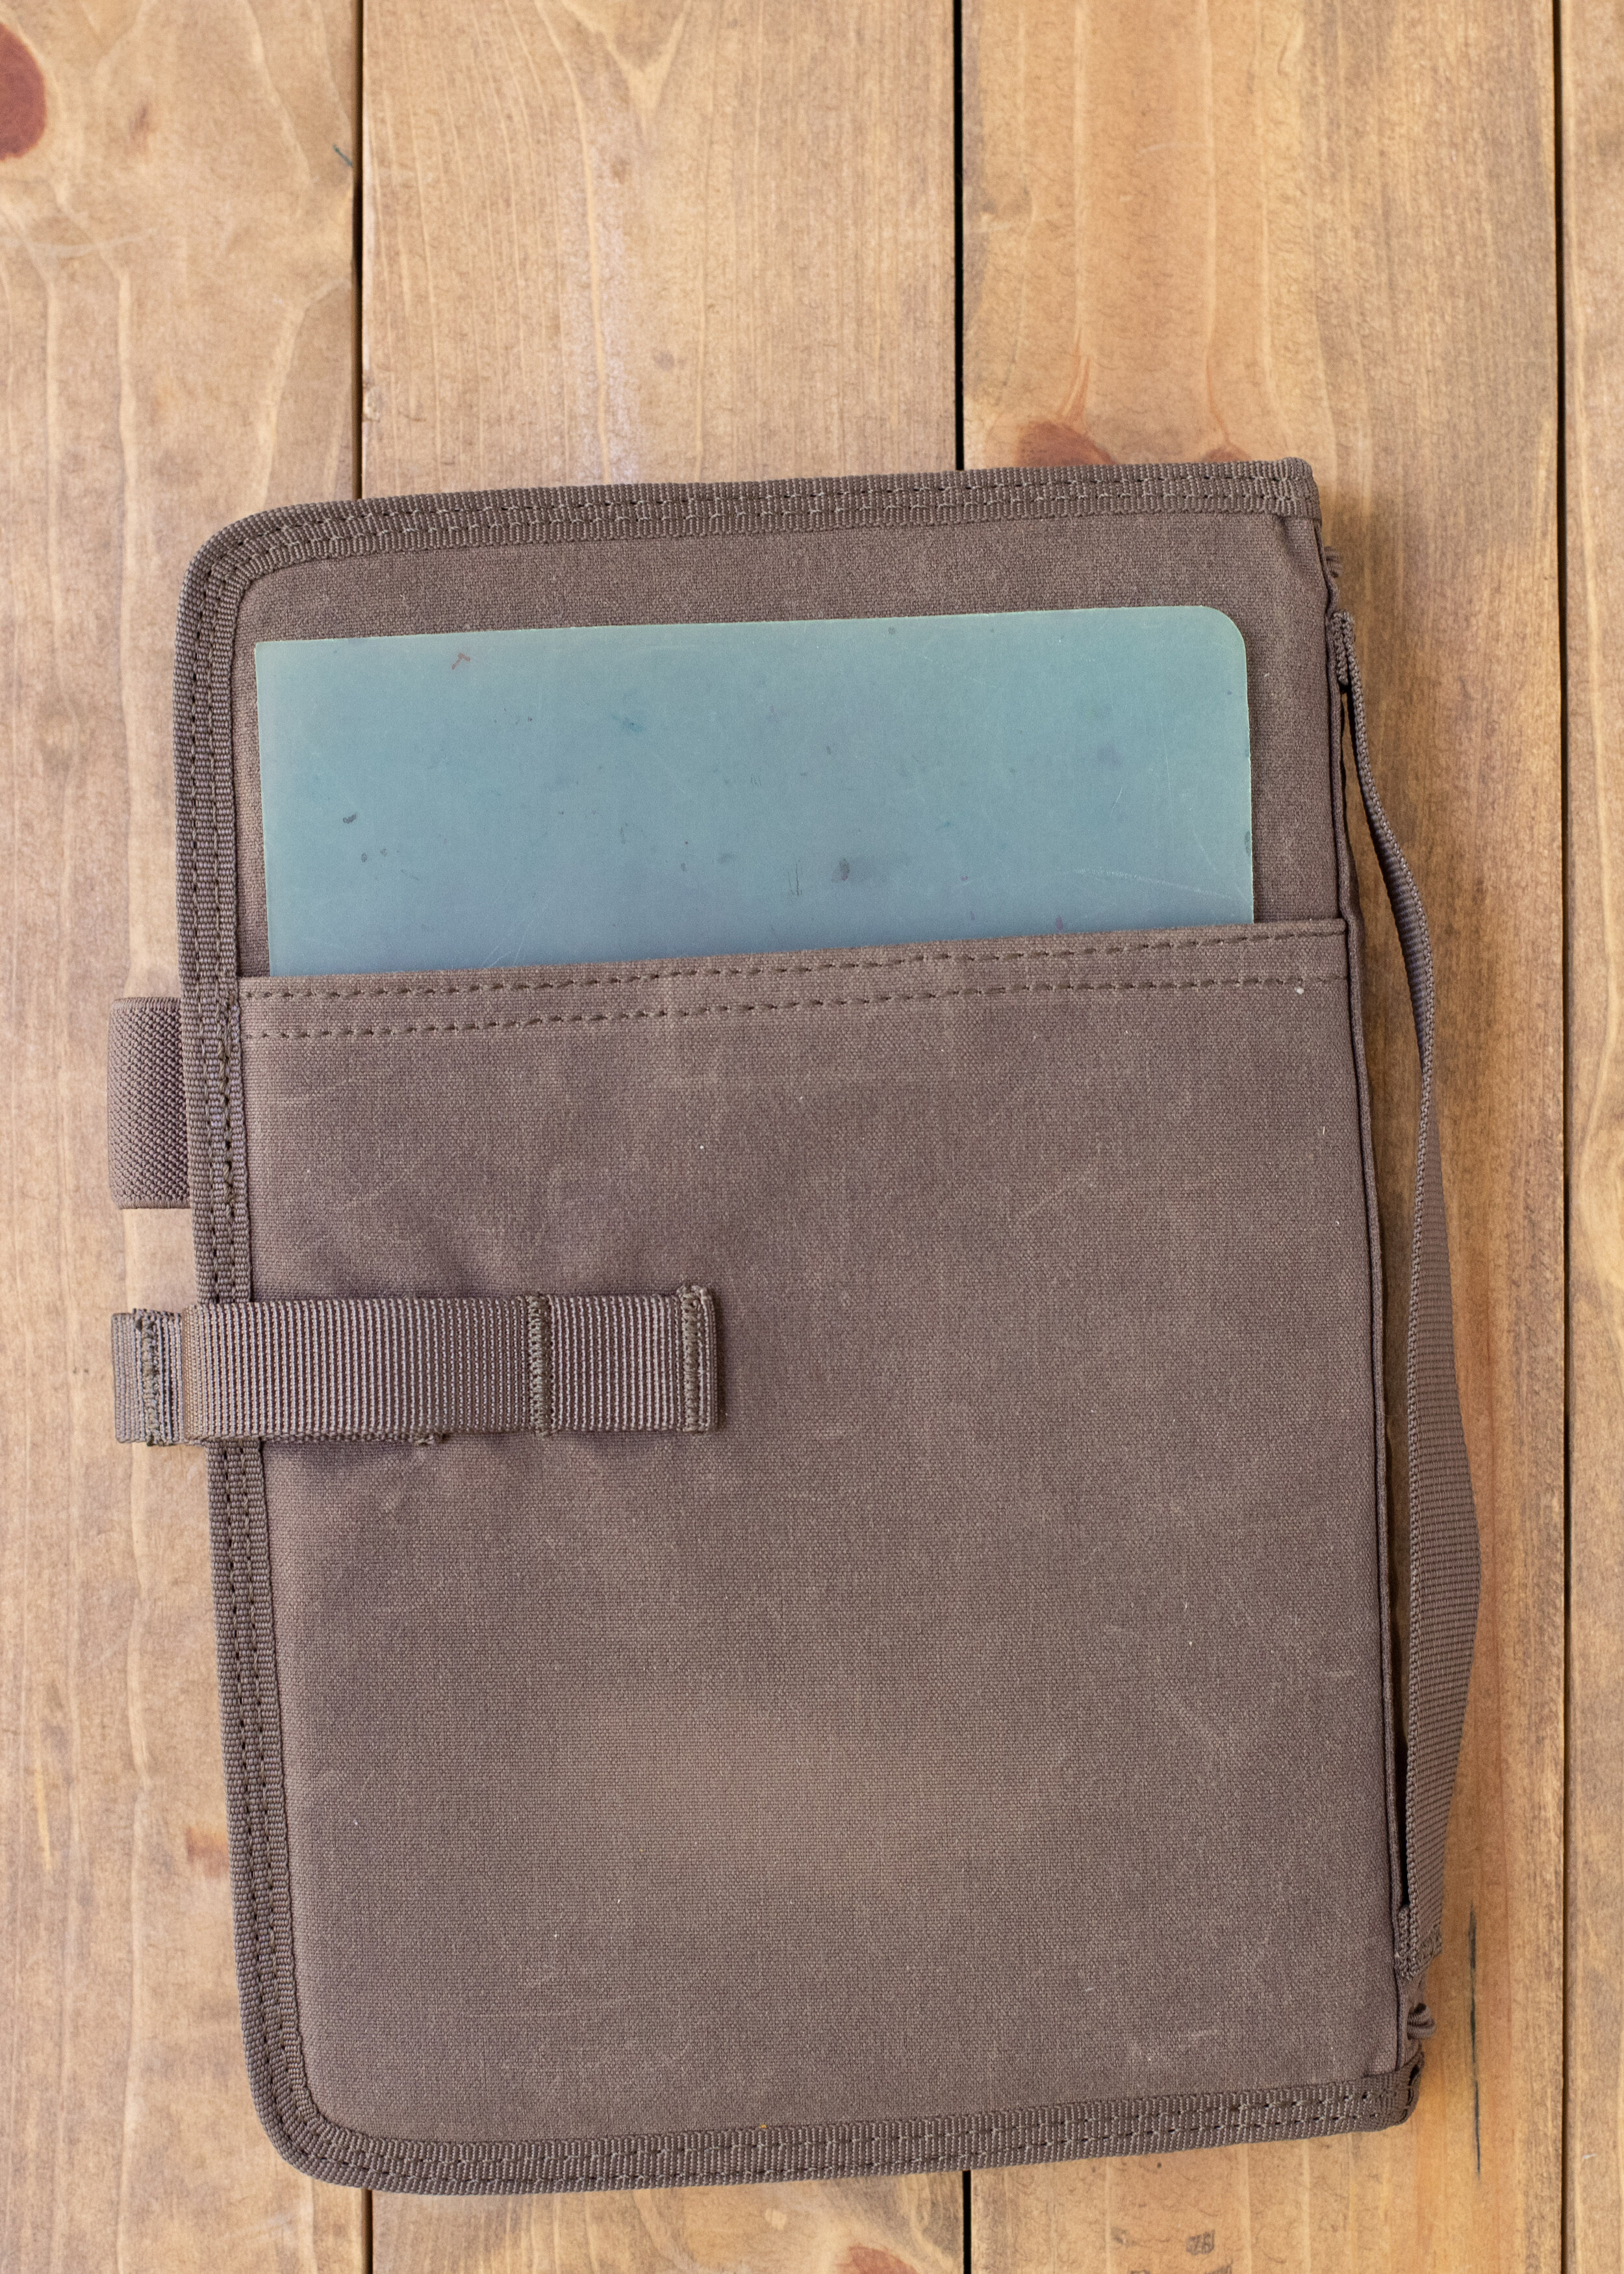 Back Pocket - The cover has a pocket on the back, it currently holds my favorite writing pad from Nanami Paper. When I use a notebook cover I don't use the writing pad under the paper, but under my hand so the paper is protected from my hand oils.